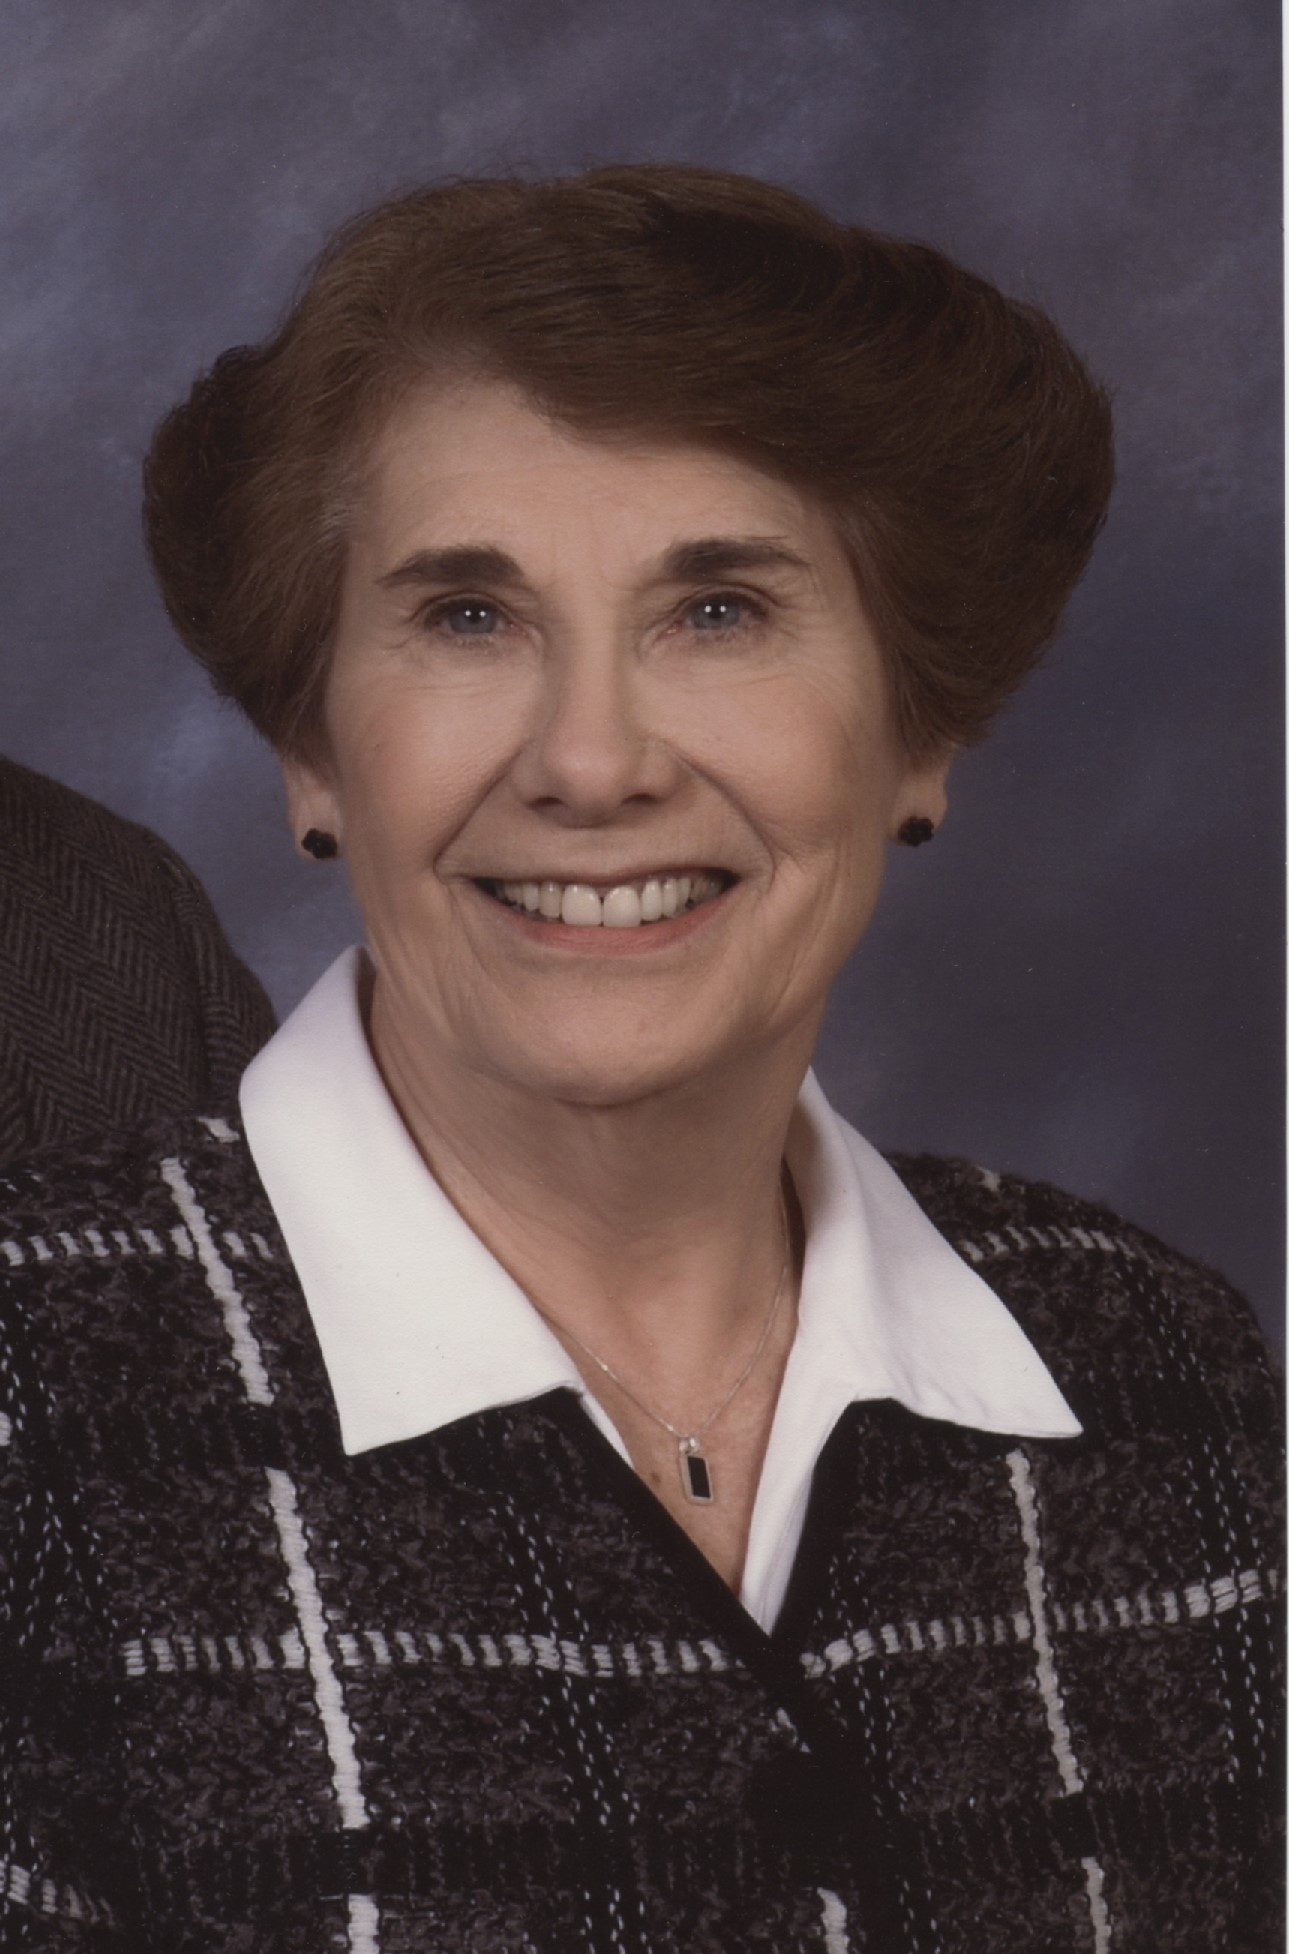 Julia A. Olinger, age 78, of Huntingburg